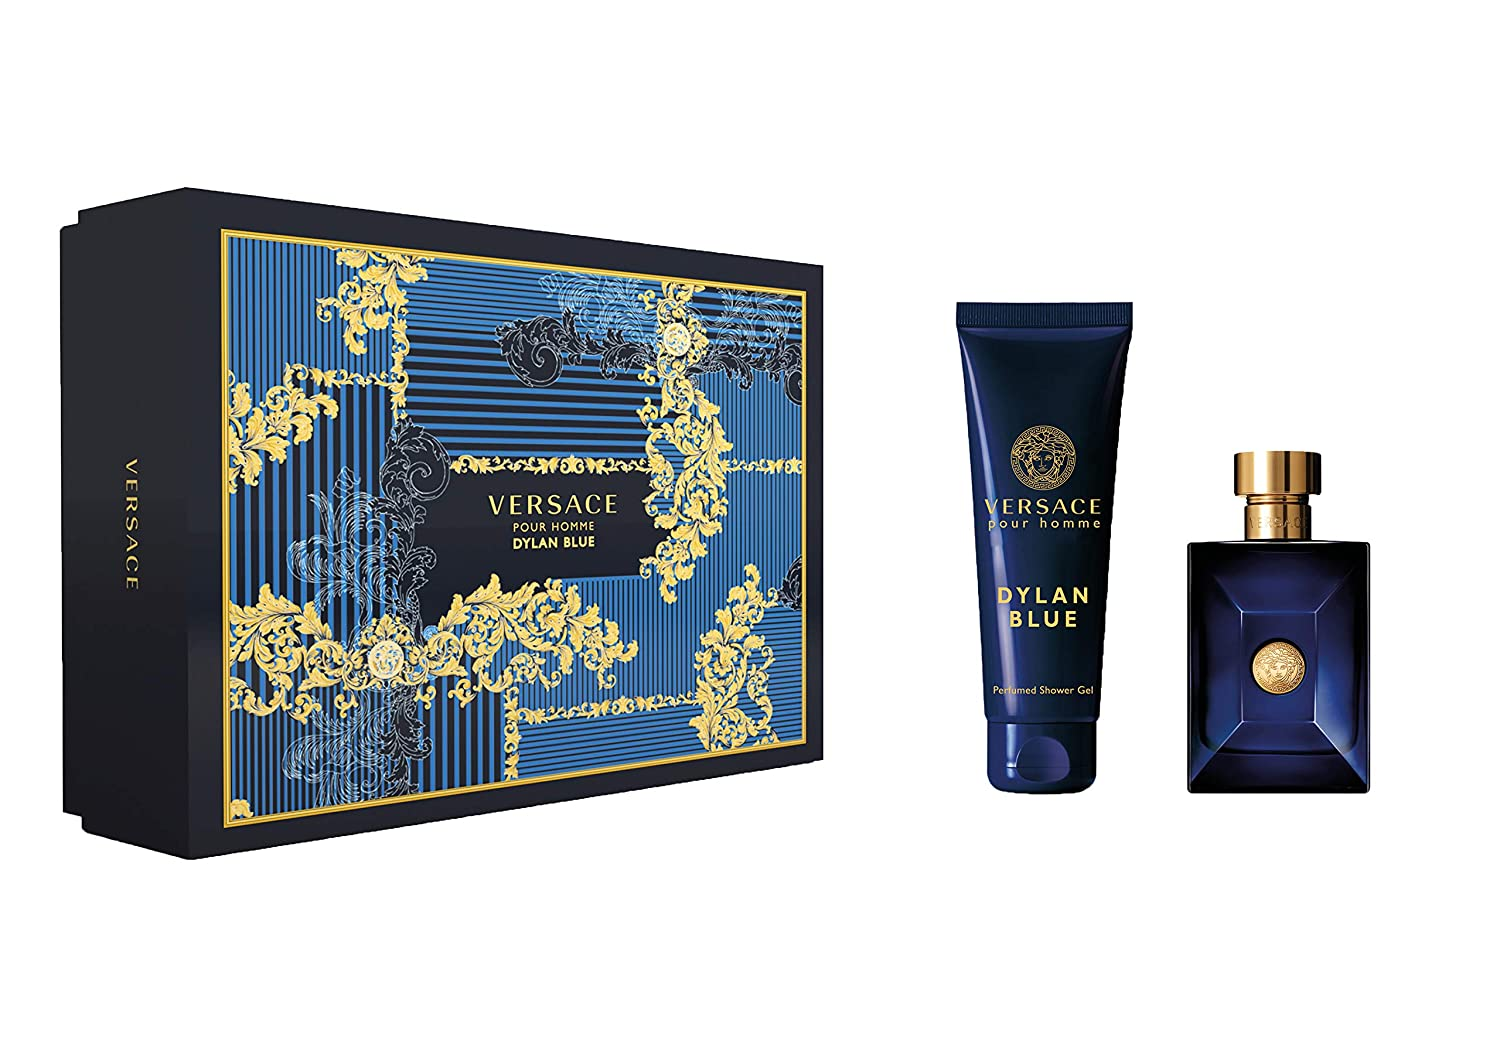 800d194da29 Versace Pour Homme Dylan Blue Giftset, Eau De Toilette 100ml + Bath Shower  Gel 150ml: VERSACE: Amazon.in: Beauty